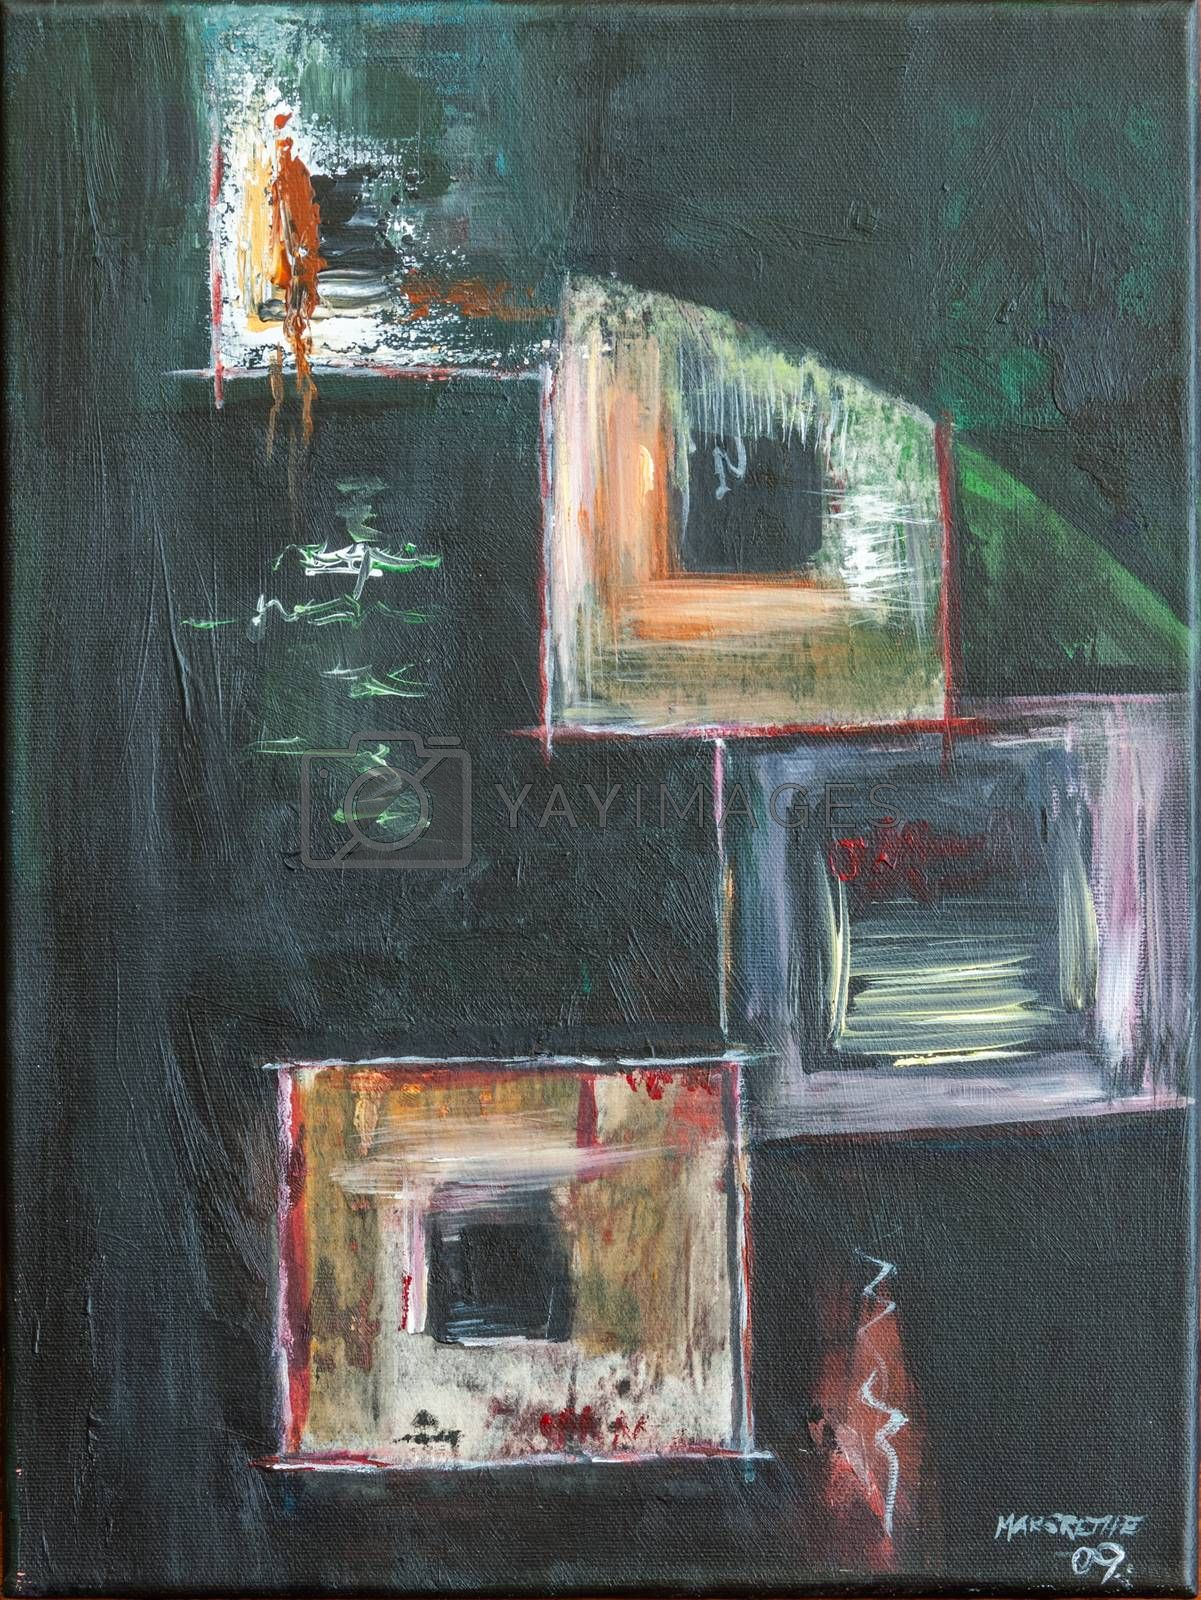 Nonfigurative oil art painting on canvas. Painting inspired by windows in different sizes, forms, and colors.